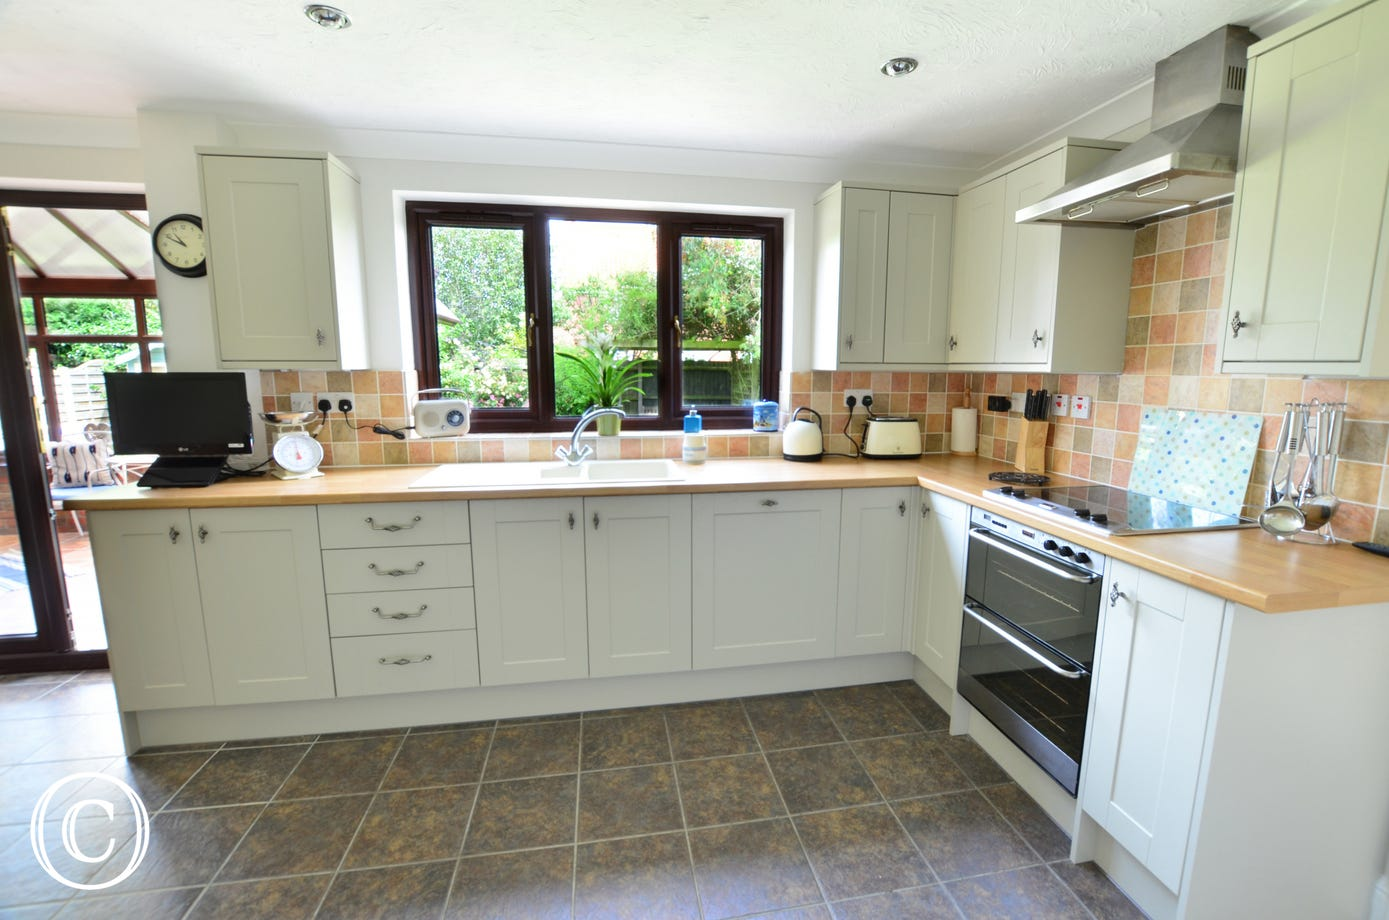 Bright and contemporary kitchen with views to the garden with the added bonus of an utility room and ground floor Cloakroom